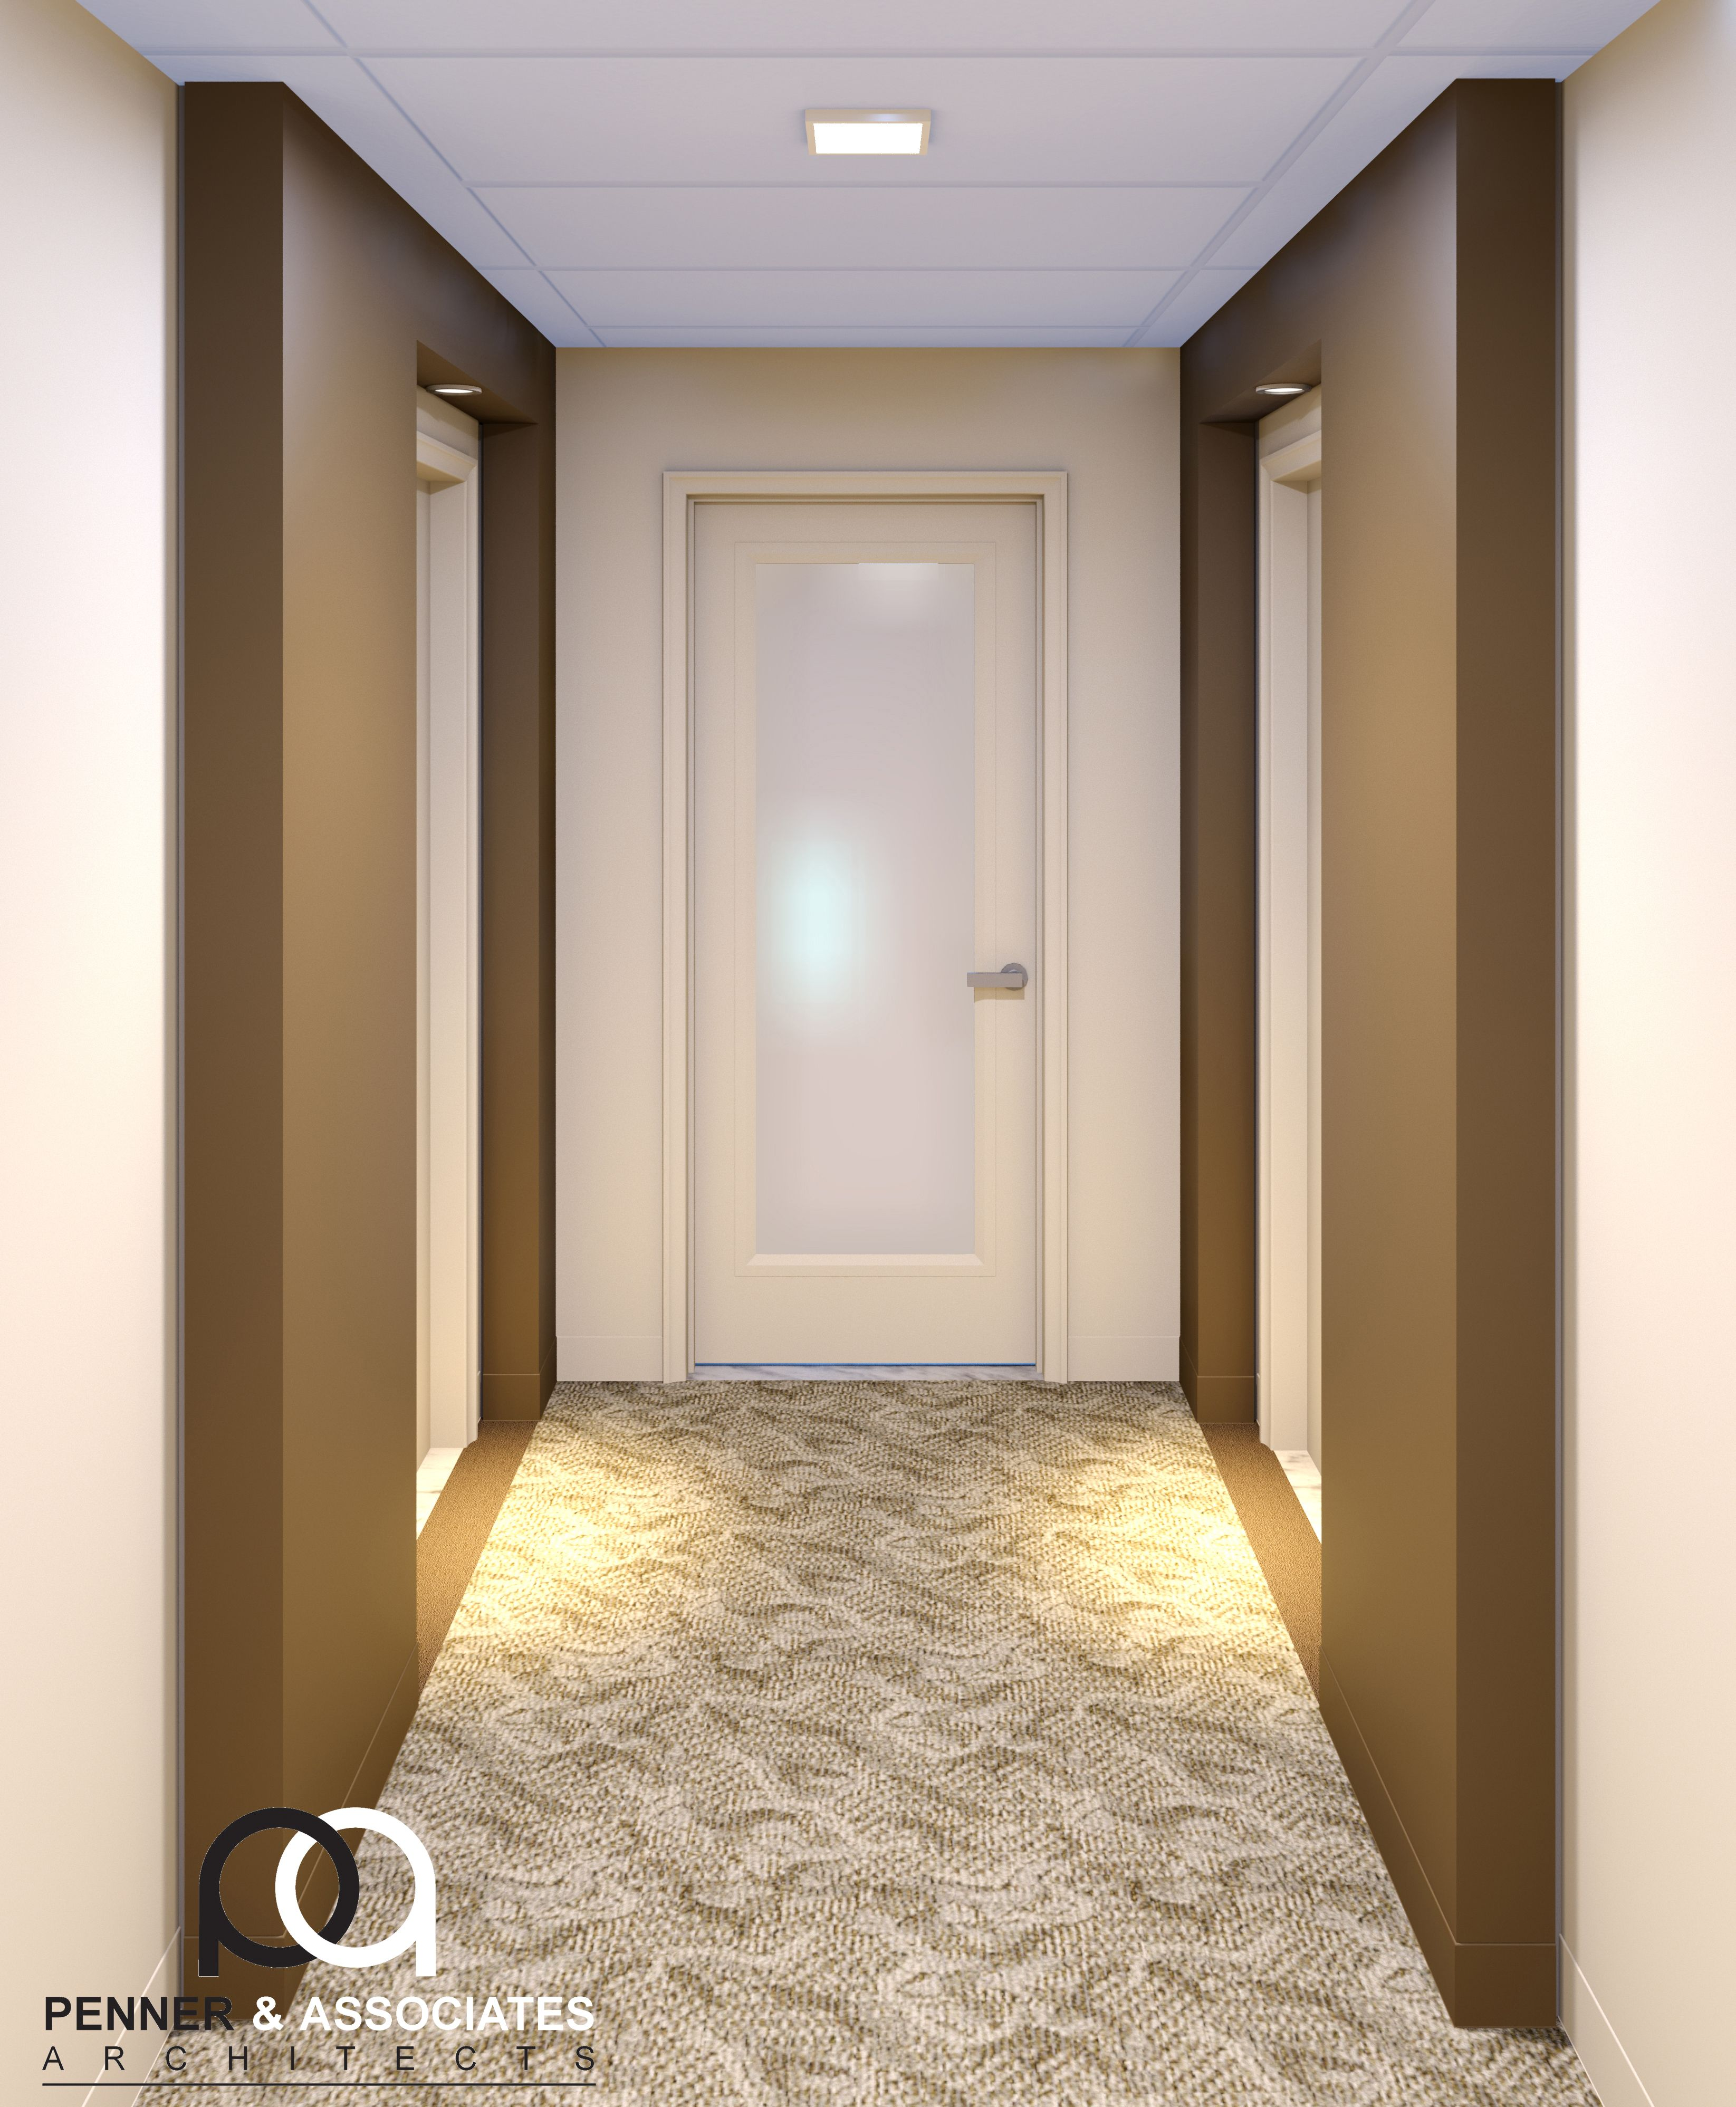 This Project Aimed To Renovate The Outdated Interior Hallways And